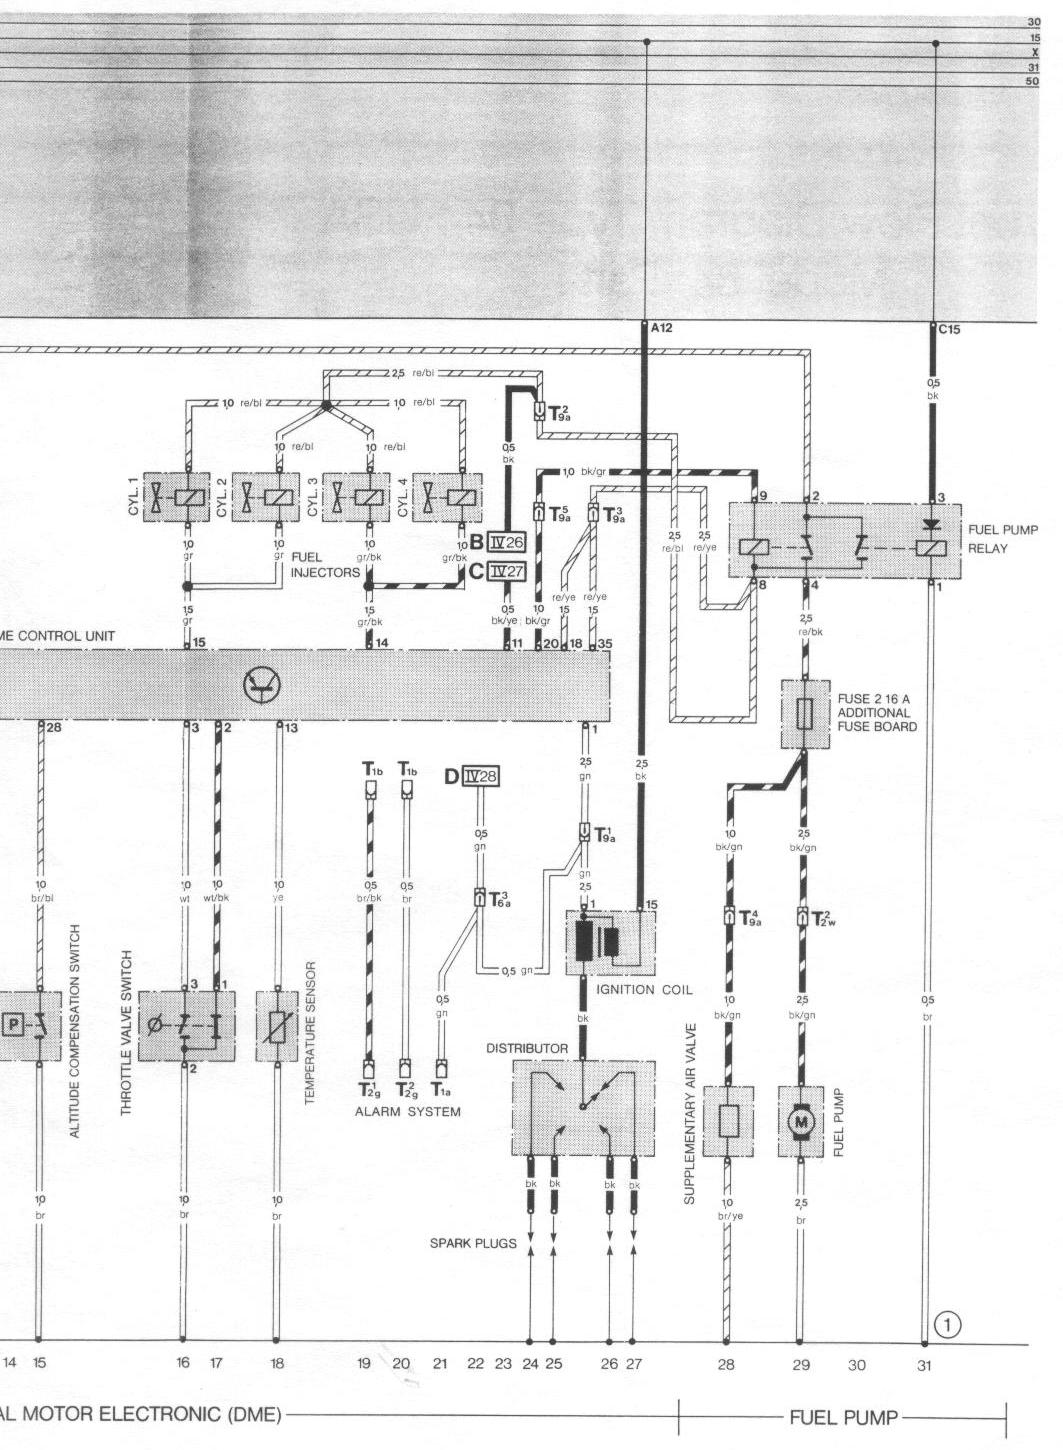 944_84_1_2 pelican parts porsche 924 944 electrical diagrams 1984 porsche 911 wiring diagram at creativeand.co